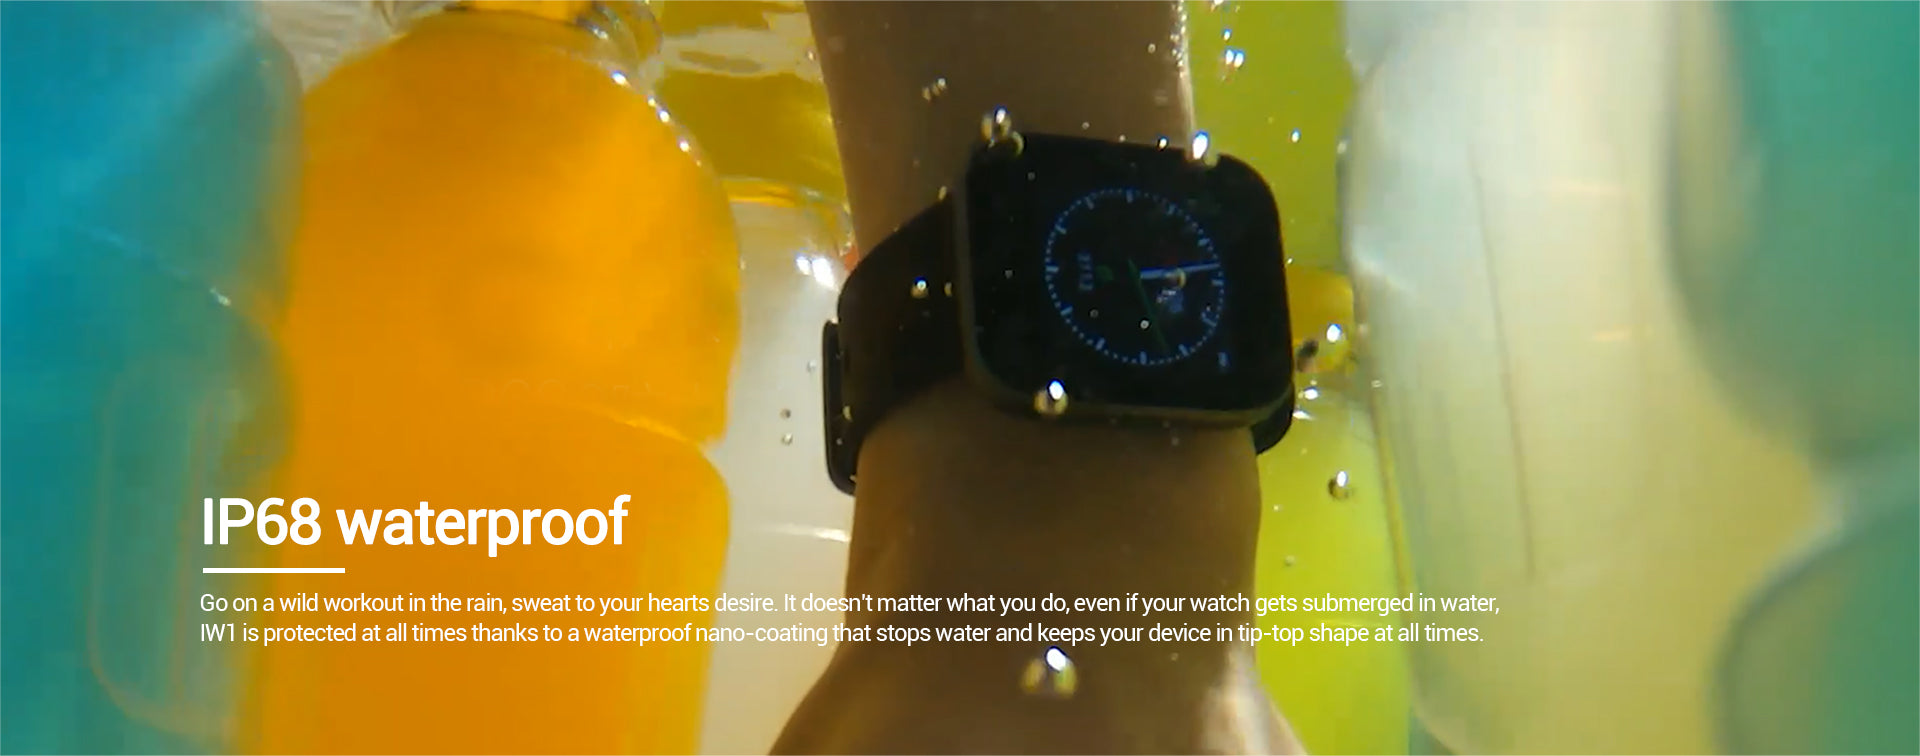 Go on a wild workout in the rain, sweat to your hearts desire. It doesnt matter what you do, even if your watch gets submerged in water, IW1 is protected at all times thanks to a waterproof nano-coating that stops water and keeps your device in tip-top shape at all times.